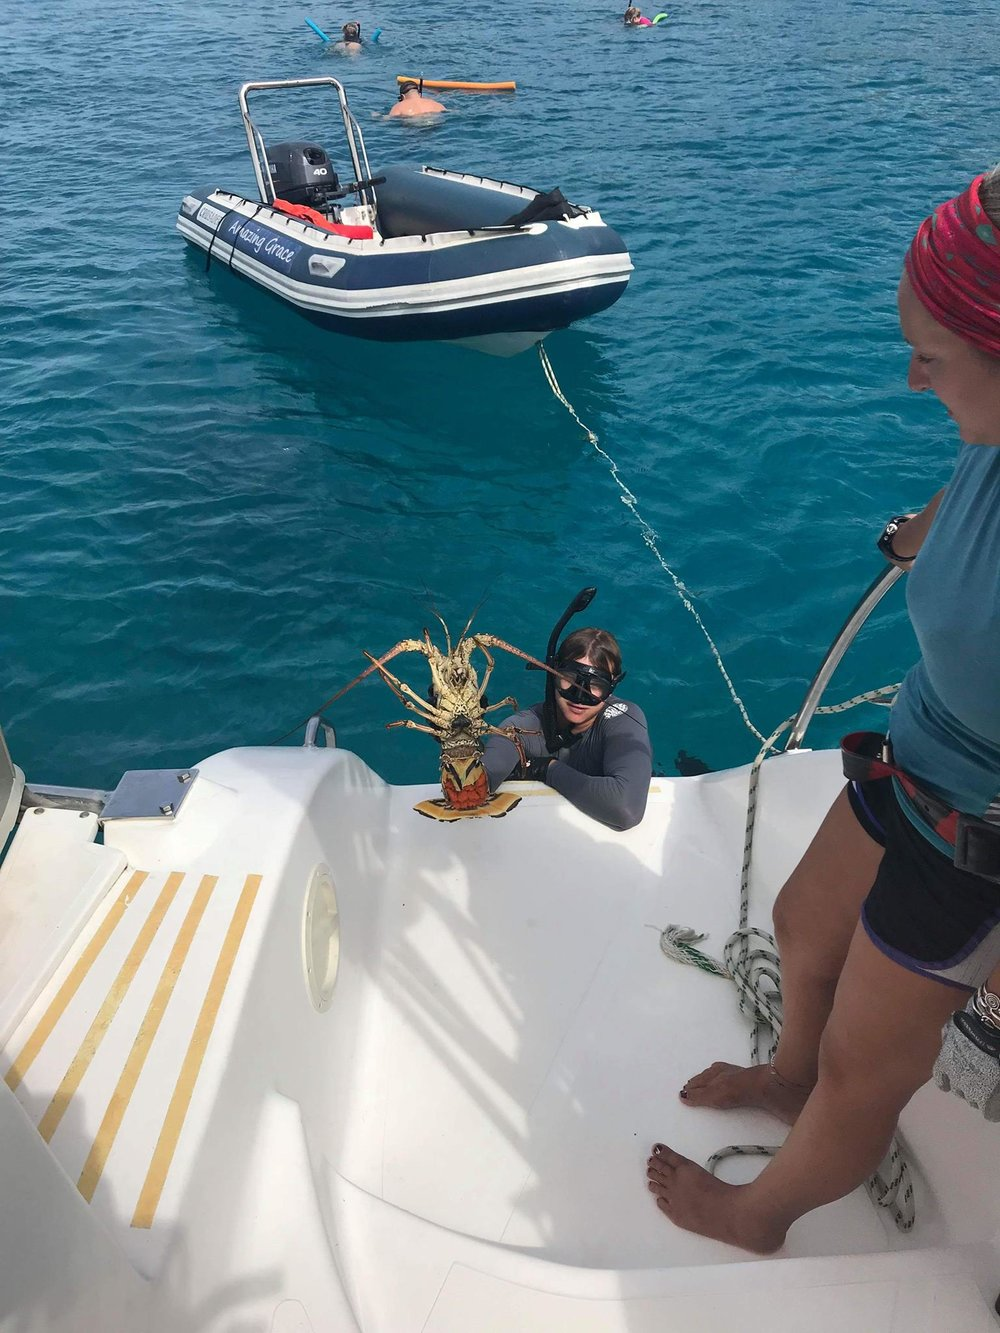 Captain Mark of Amazing Grace catching dinner! Virgin Gorda- April 2018